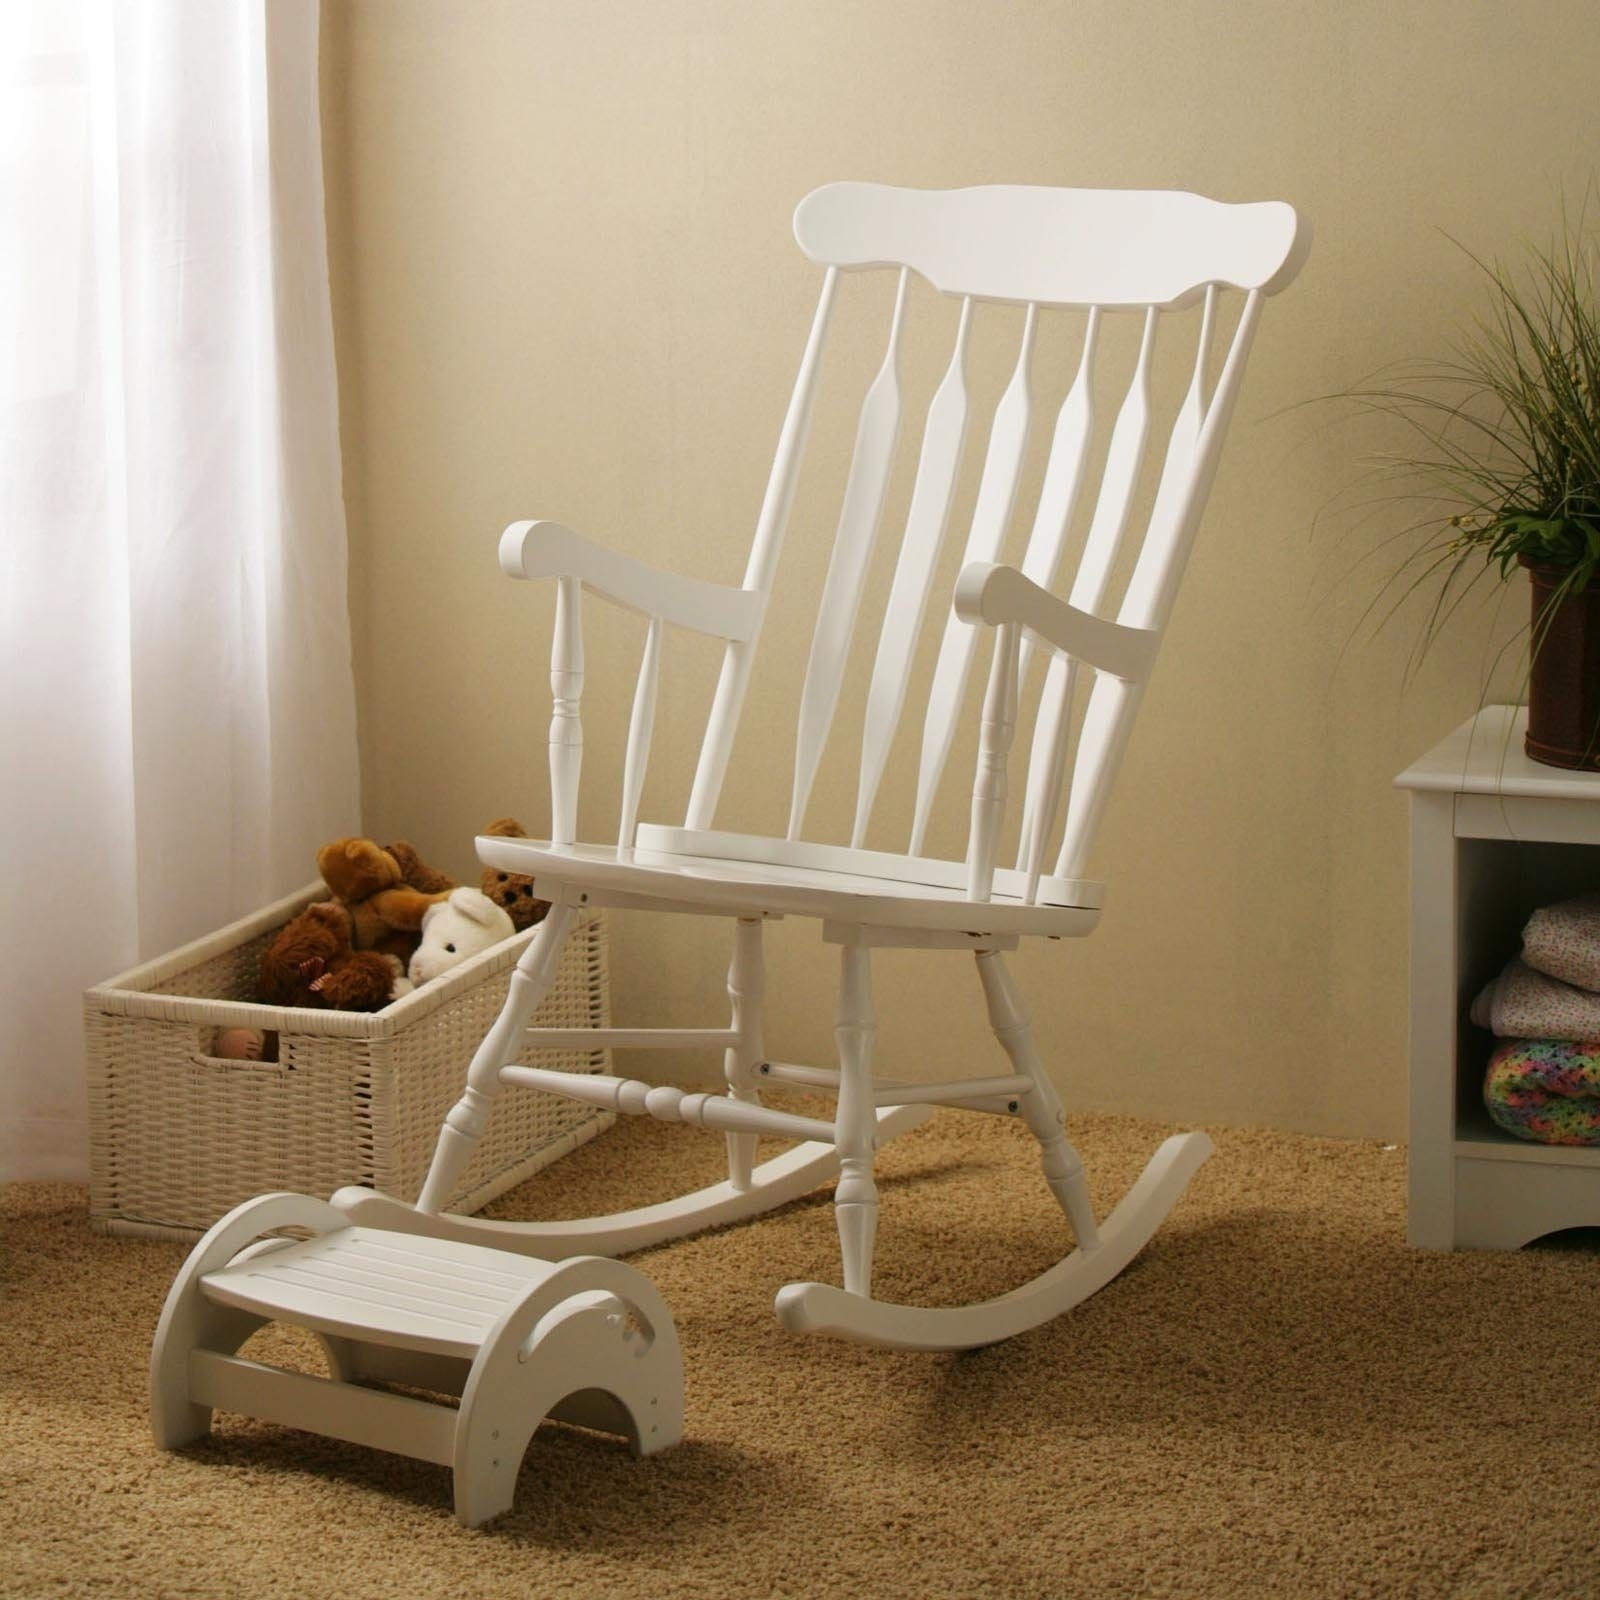 Wooden Nursing Rocking Chair — Wilson Home Ideas : Making Nursing Pertaining To White Wicker Rocking Chair For Nursery (View 14 of 15)